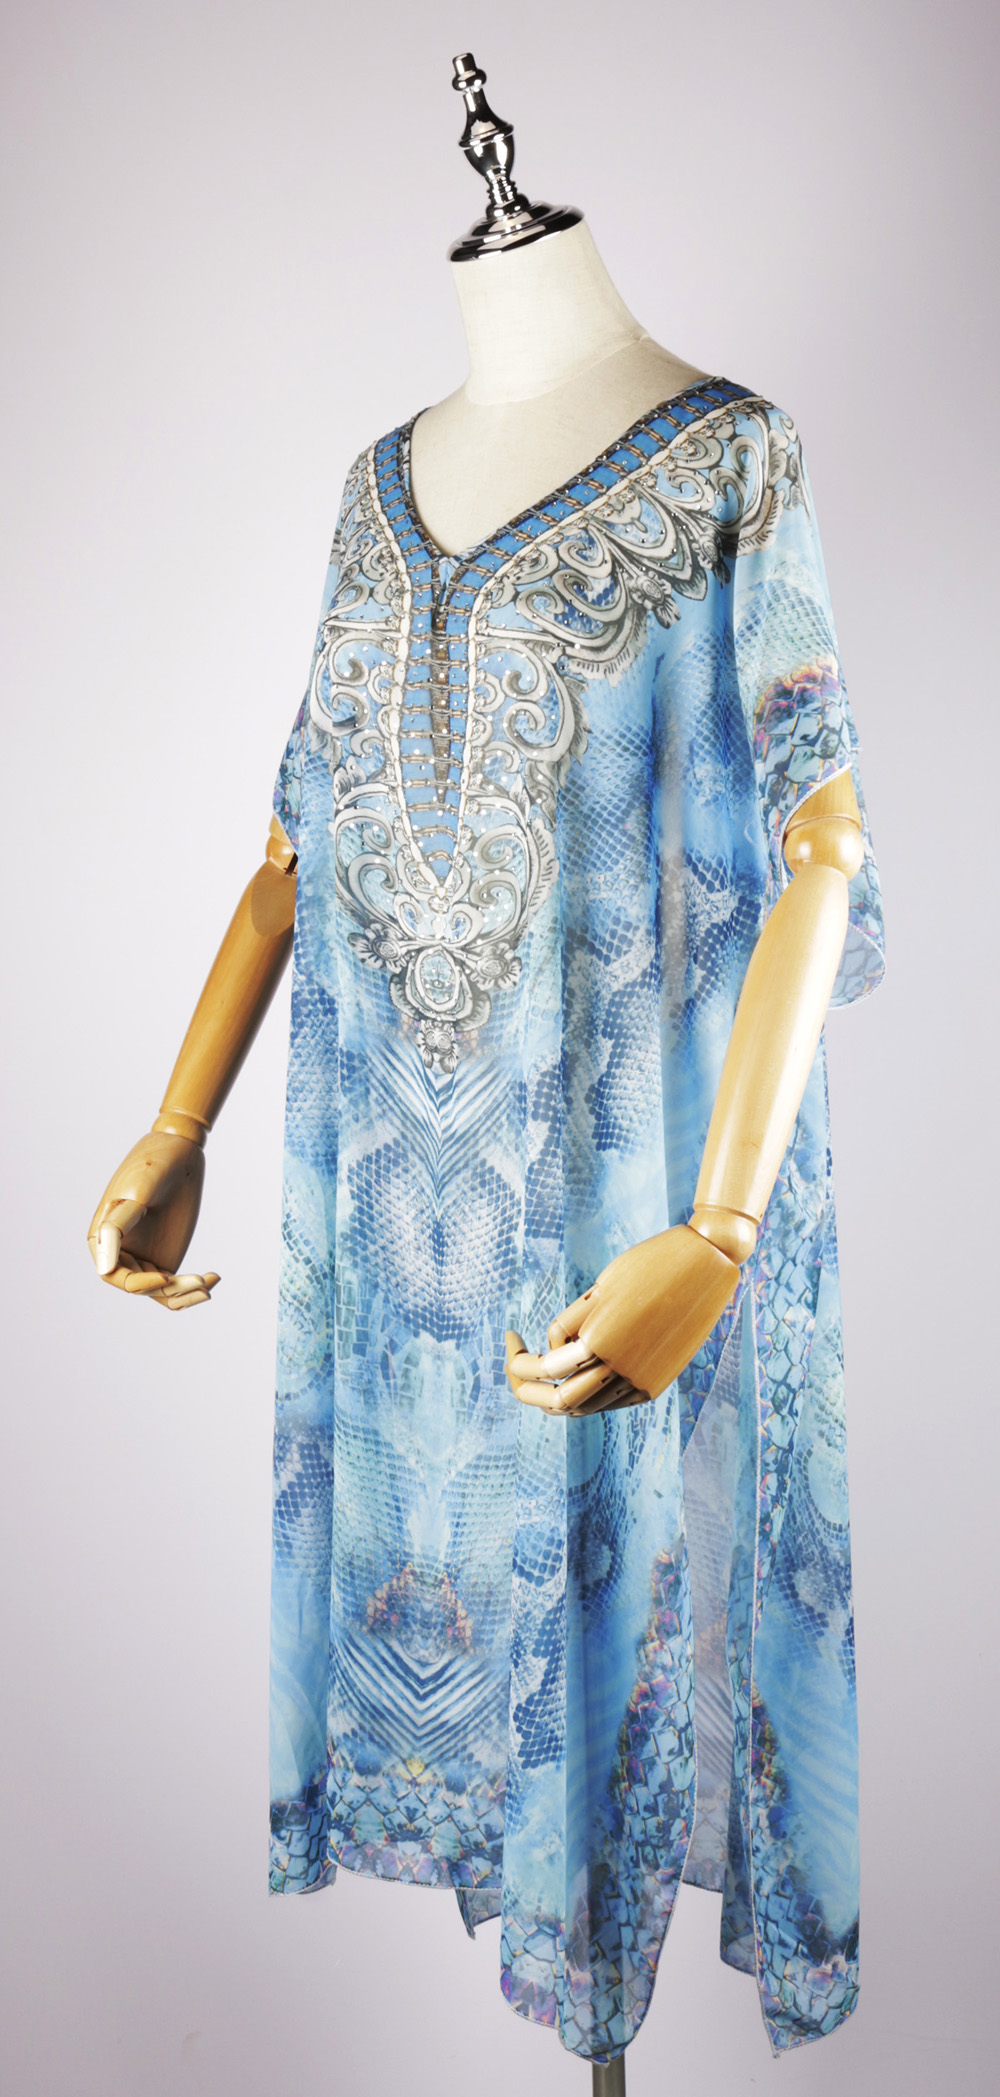 LKF2038 side, kaftans dresses